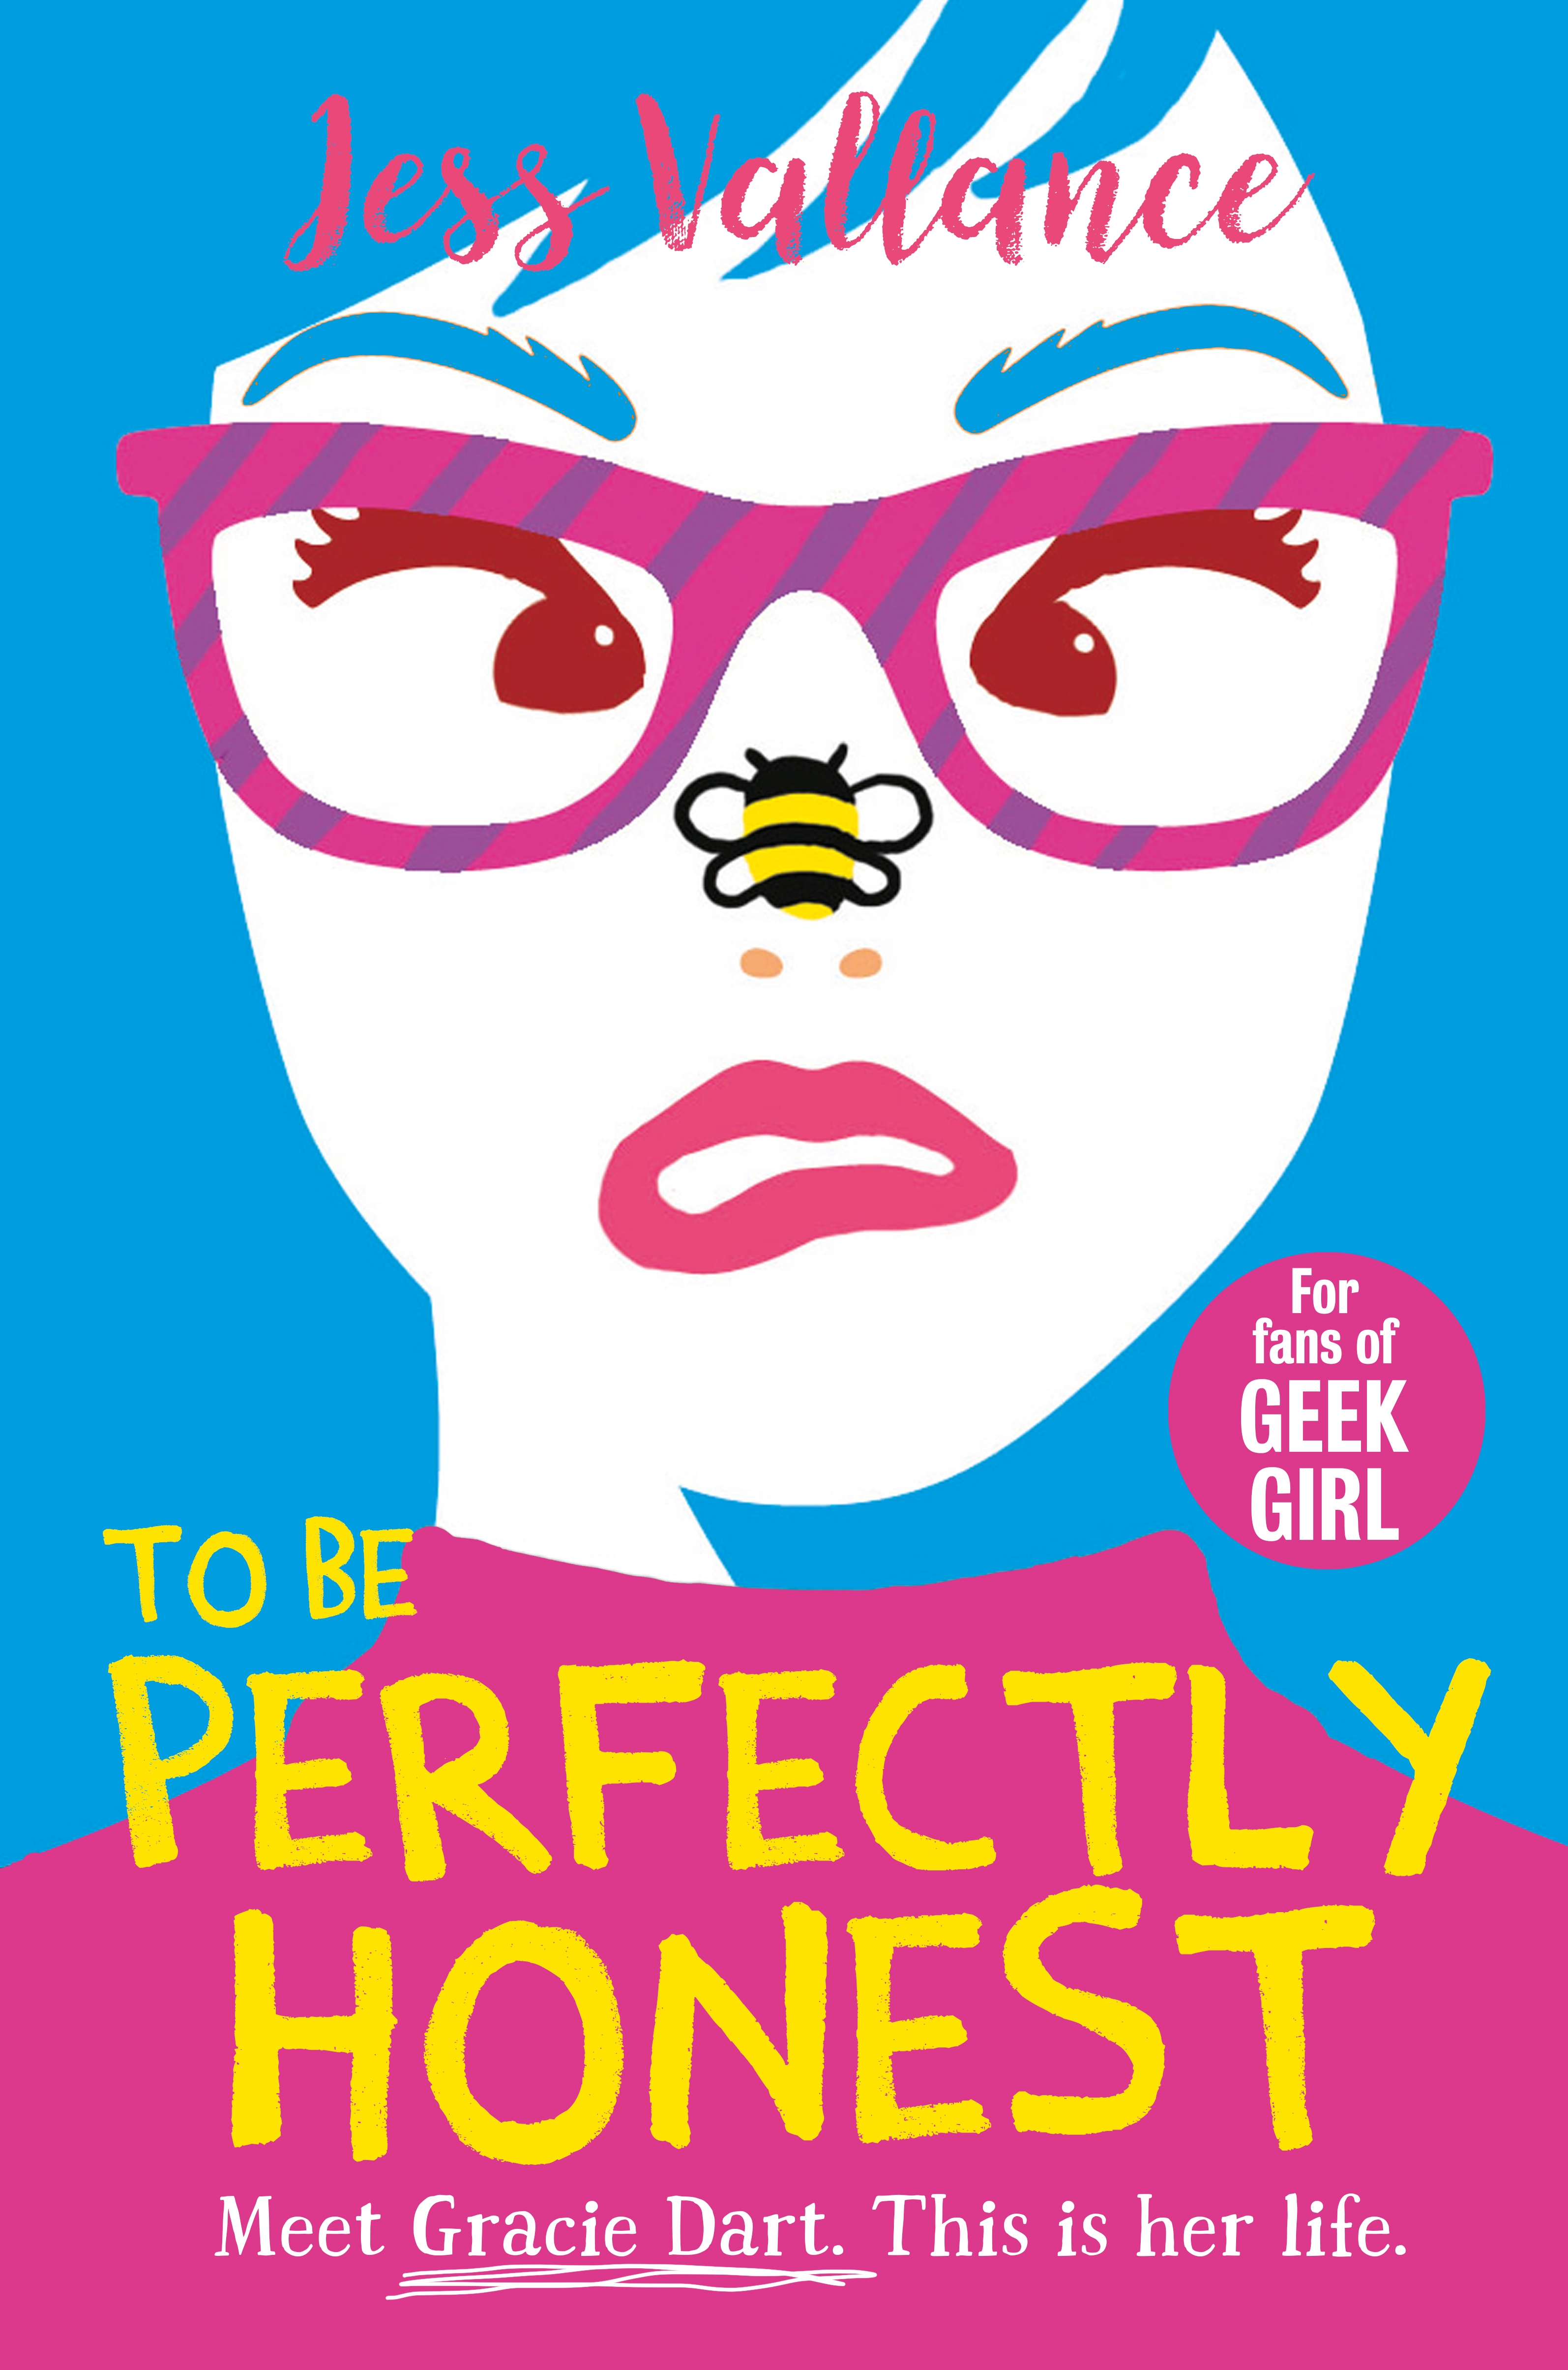 To Be Perfectly Honest by Jess Vallance